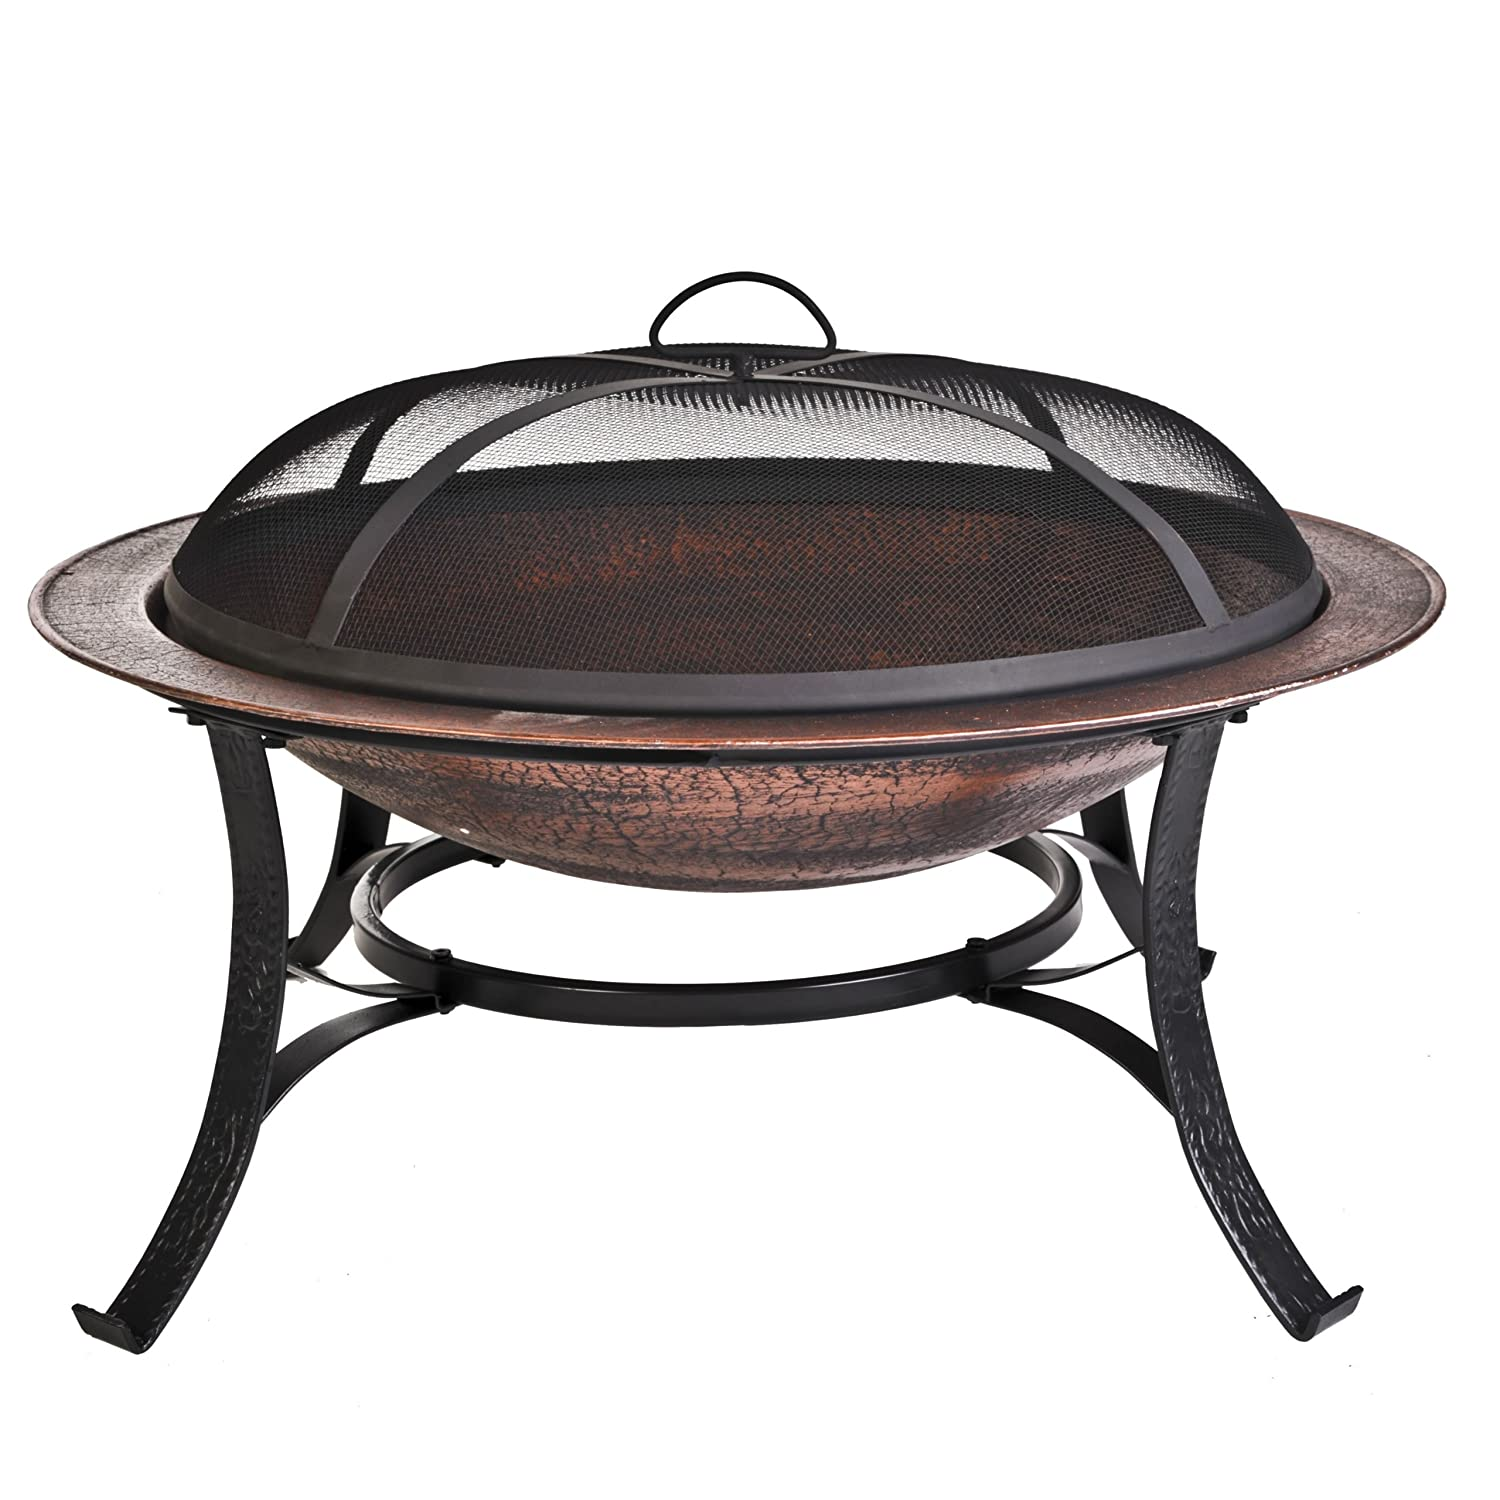 Round Cast Iron Copper Finish Fire Pit with Screen